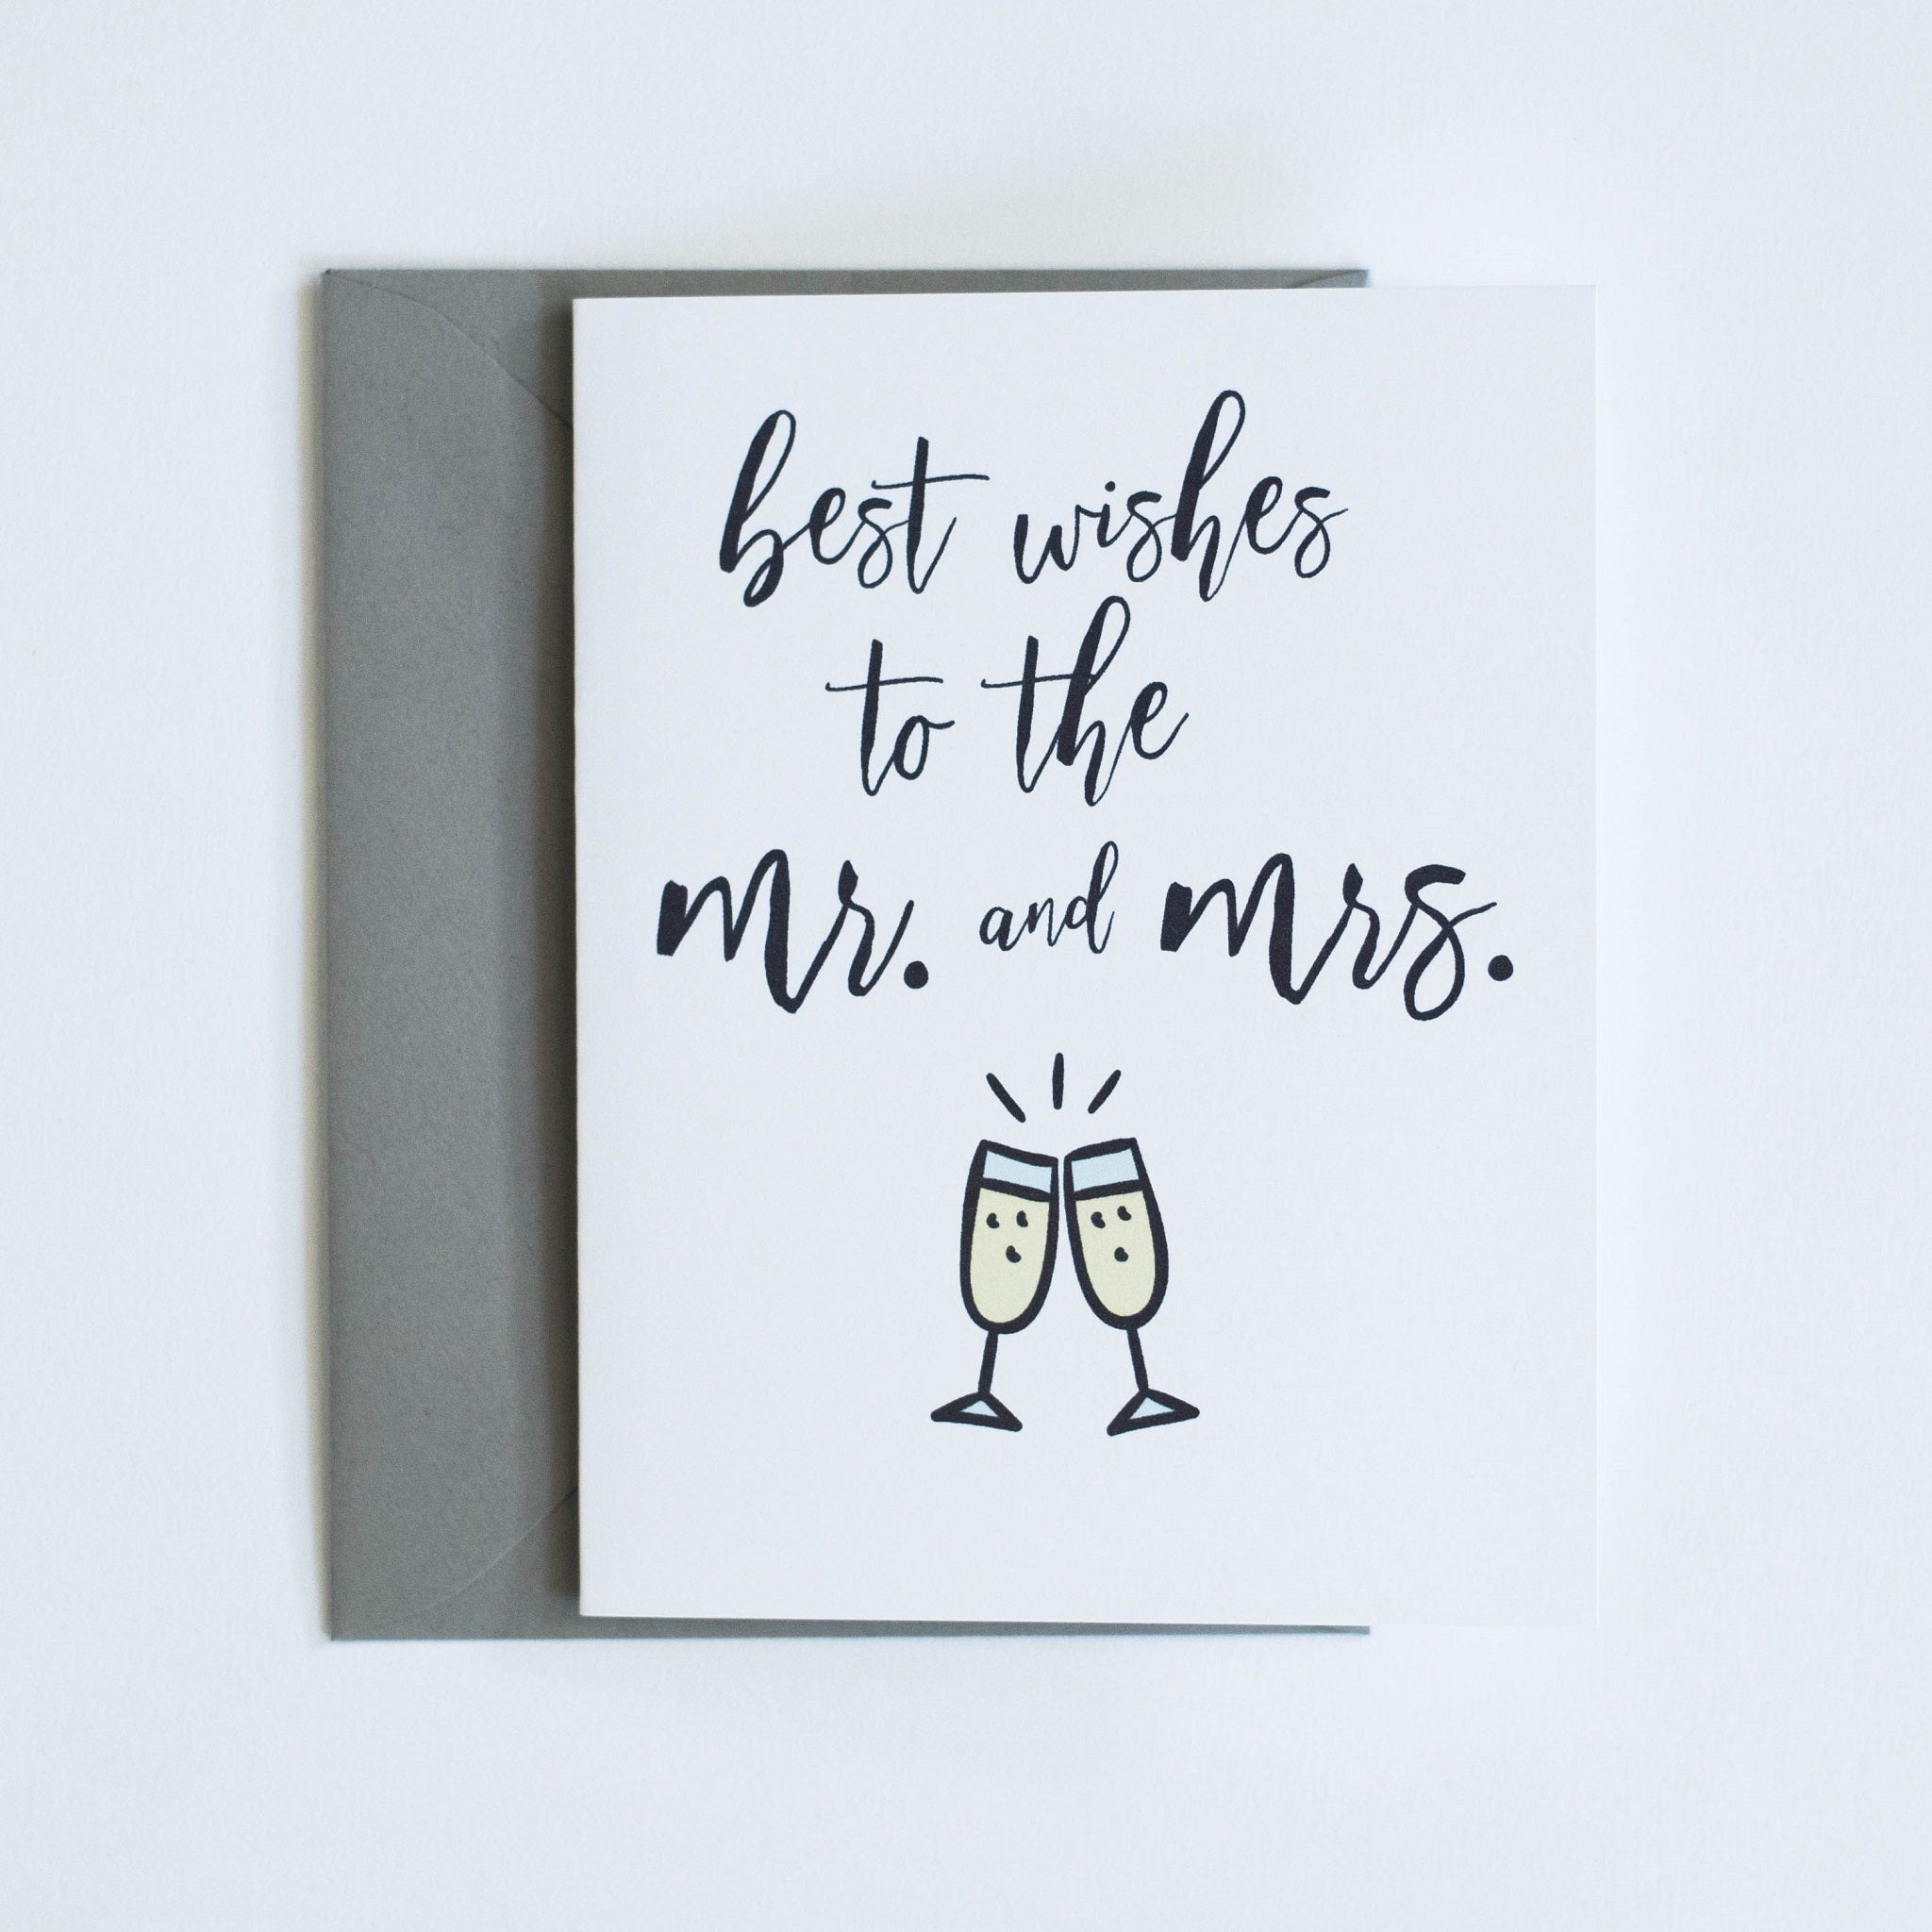 Card: Best wishes to the Mr & Mrs